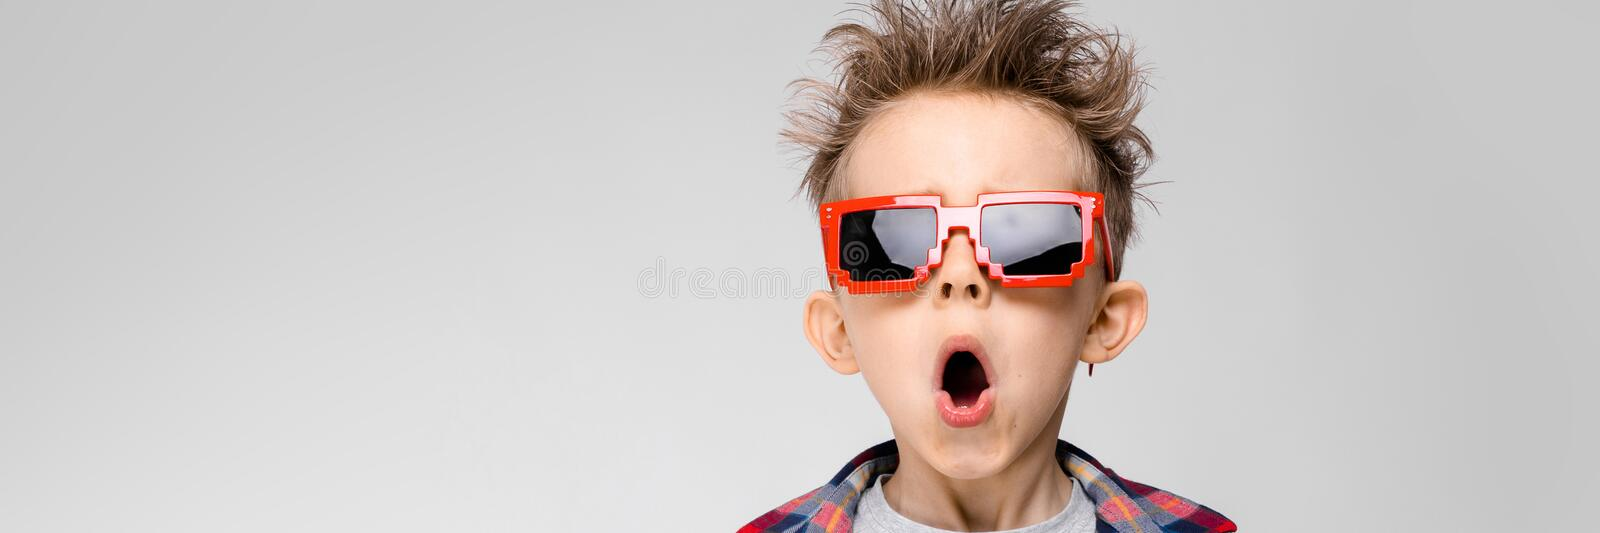 A handsome boy in a plaid shirt, gray shirt and jeans stands on a gray background. A boy wearing sunglasses. Red-haired. Charming happy child on gray background royalty free stock images